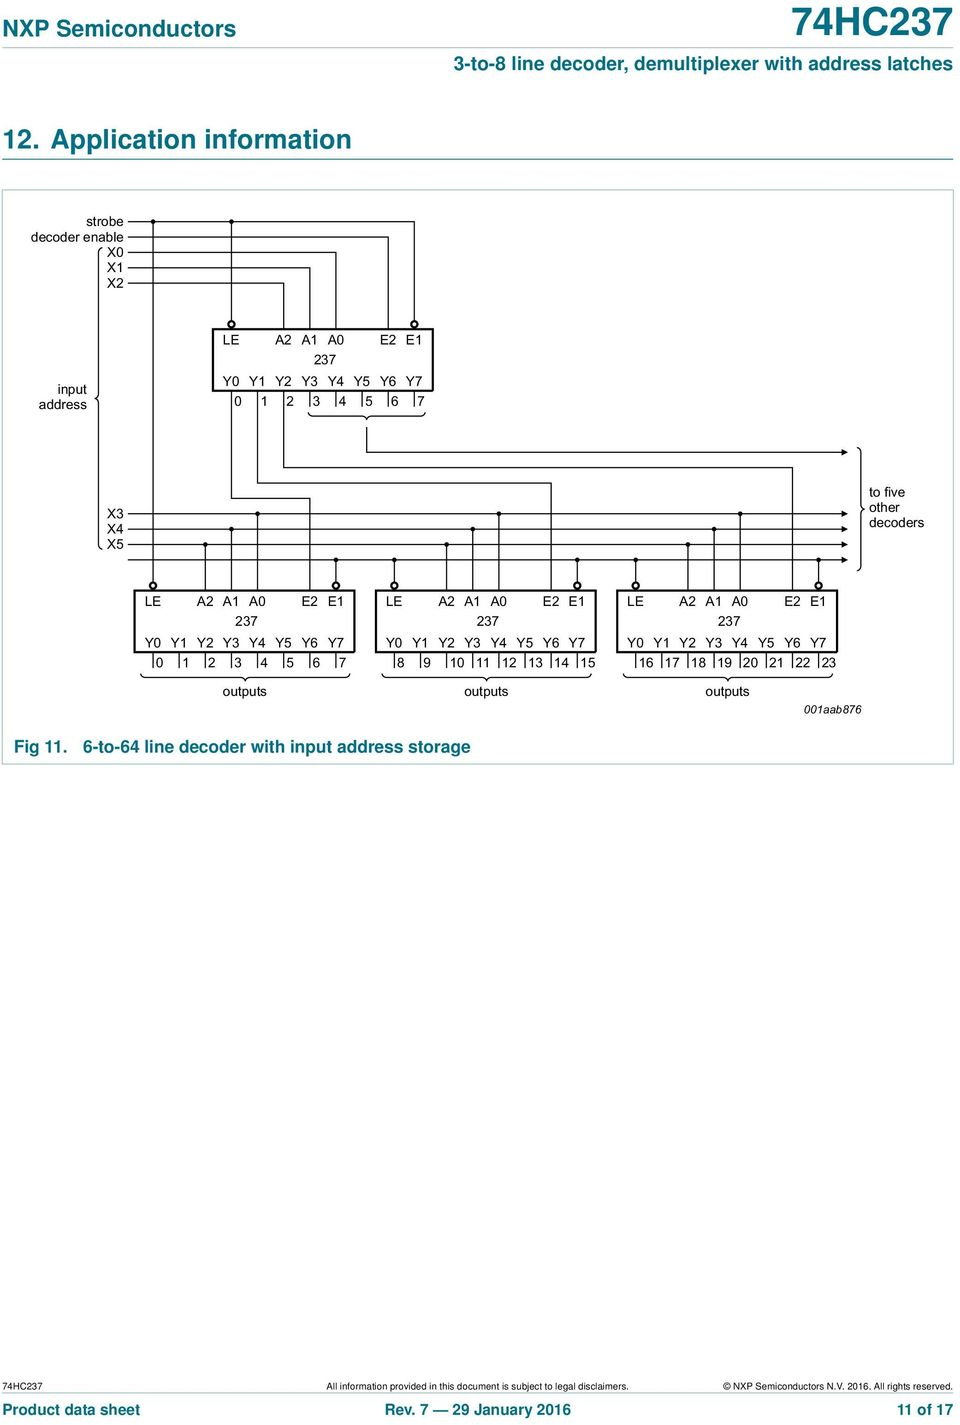 3 To 8 Line Decoder Demultiplexer With Address Latches Pdf Multiplexer And Circuit Diagrams Applications Provided In This Document Is Subject Legal Disclaimers